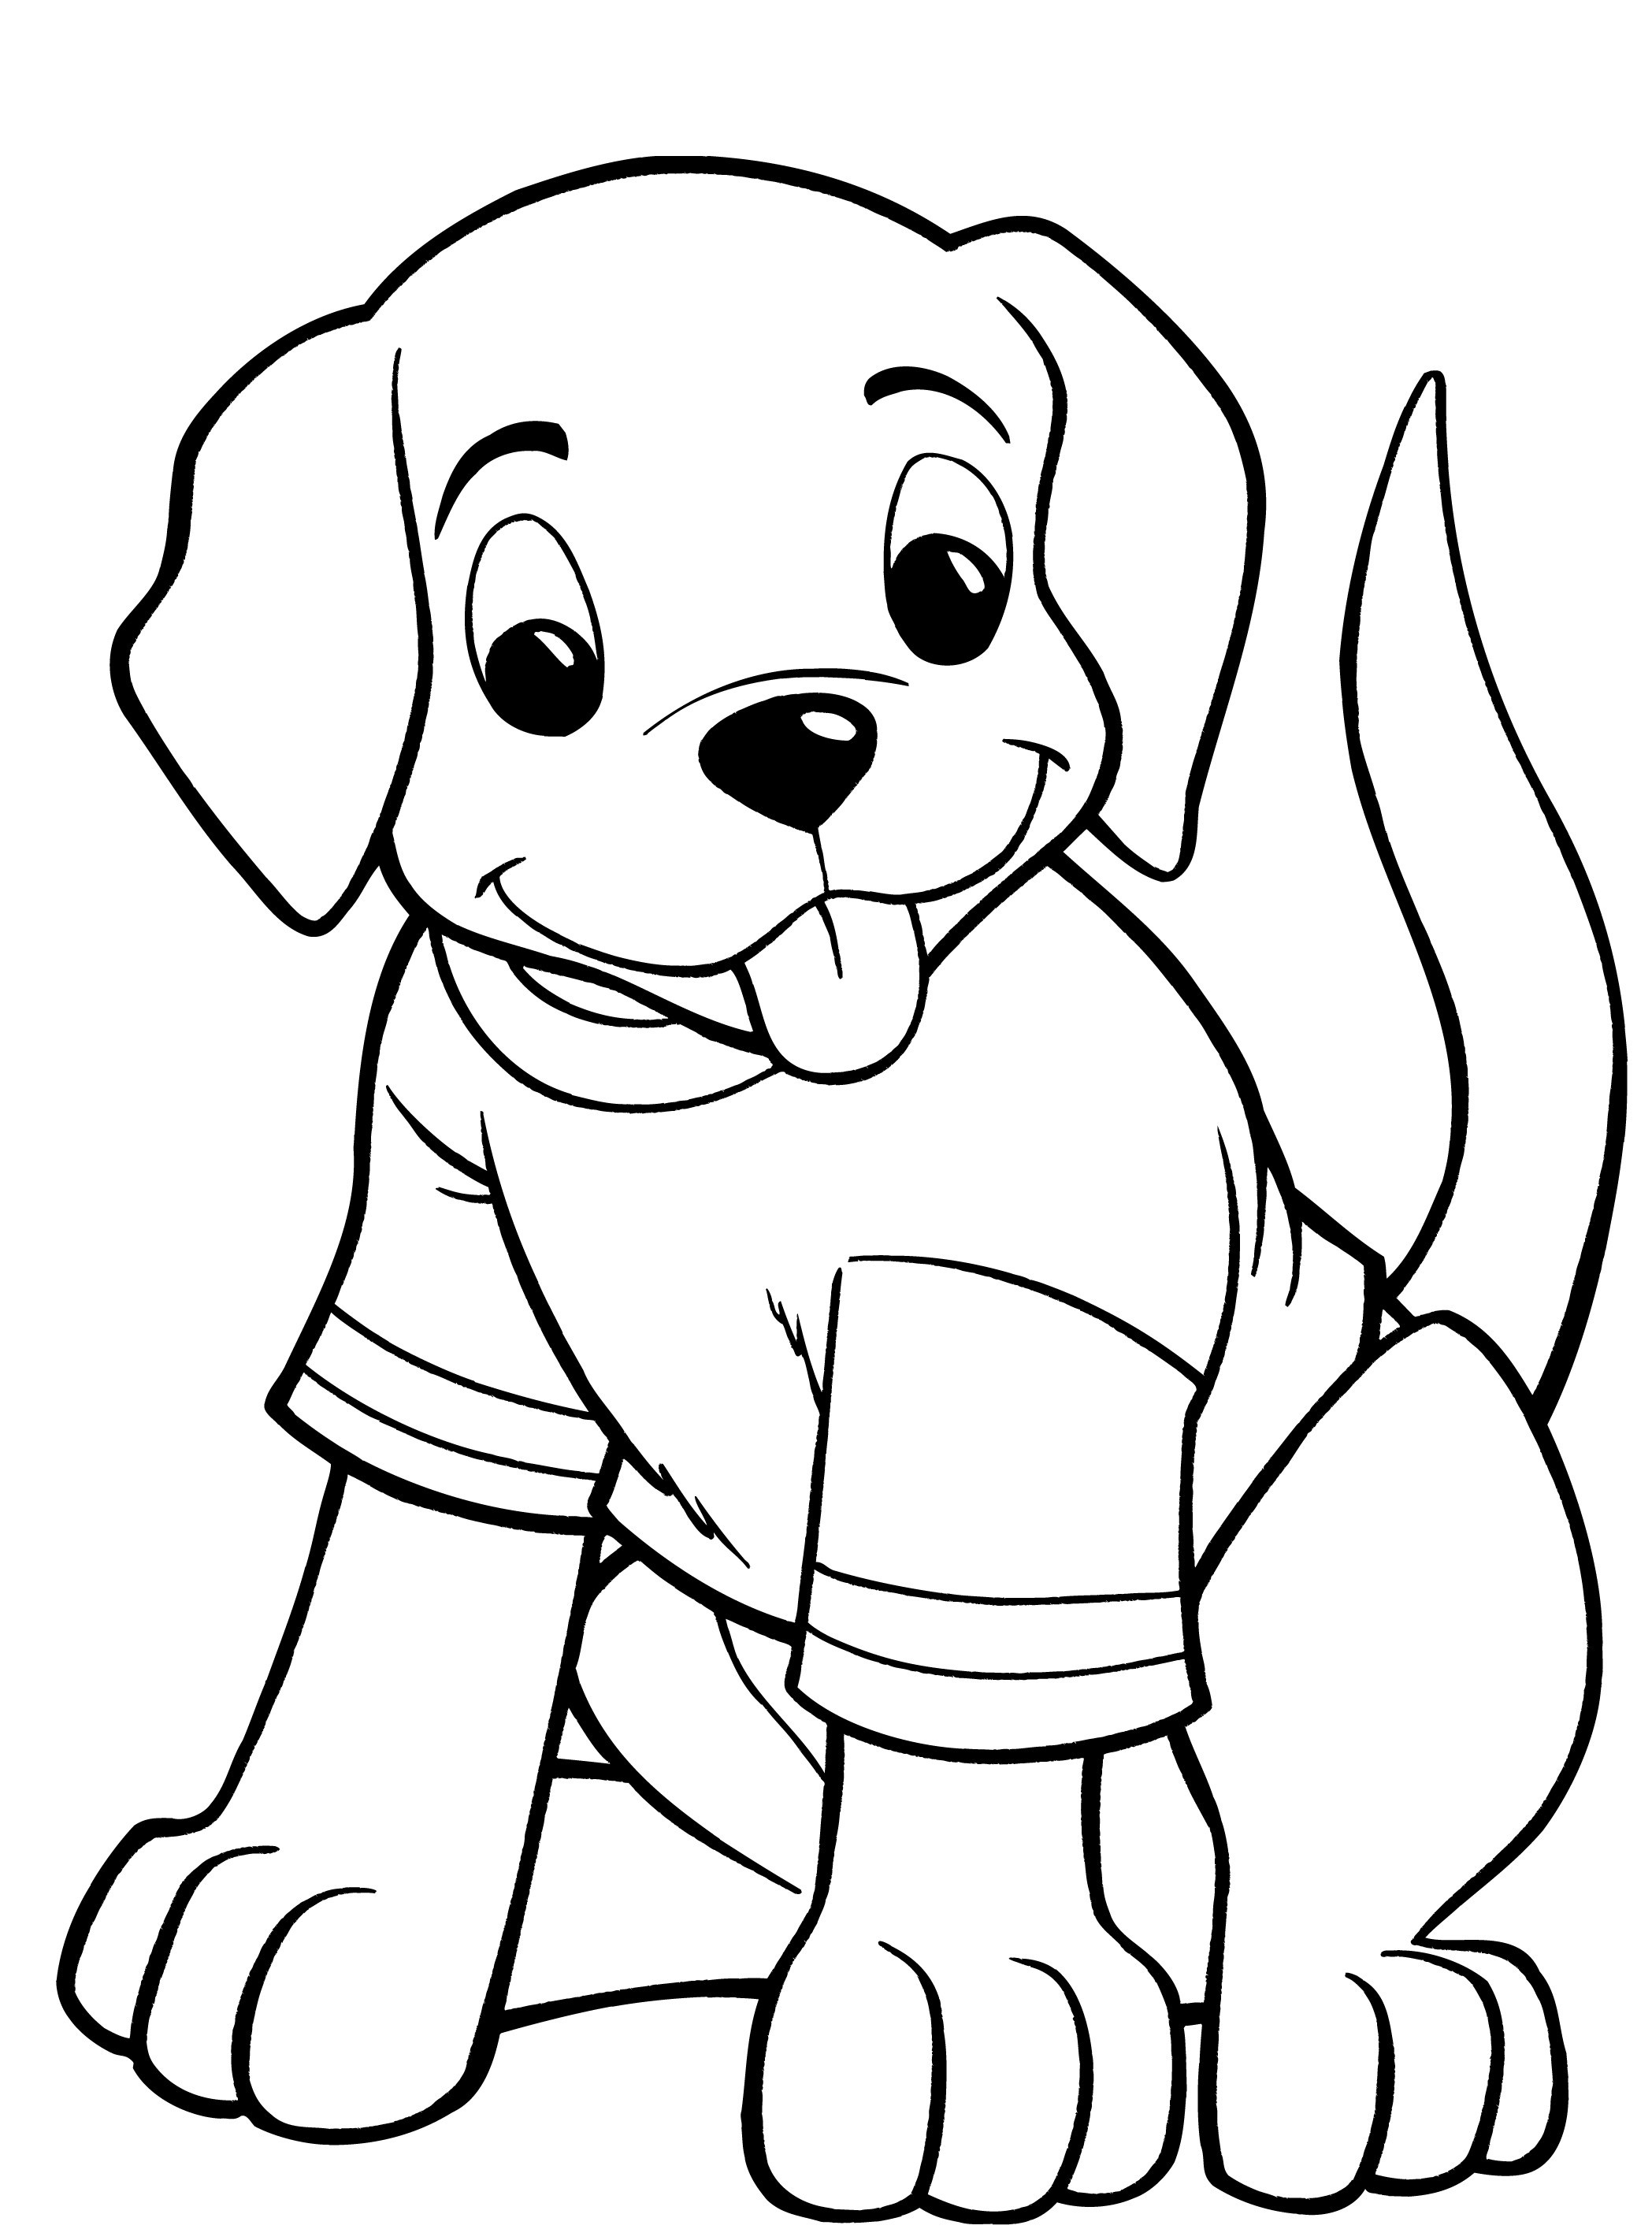 dog coloring pictures printable dog coloring pages for kids preschool and kindergarten dog coloring pictures printable